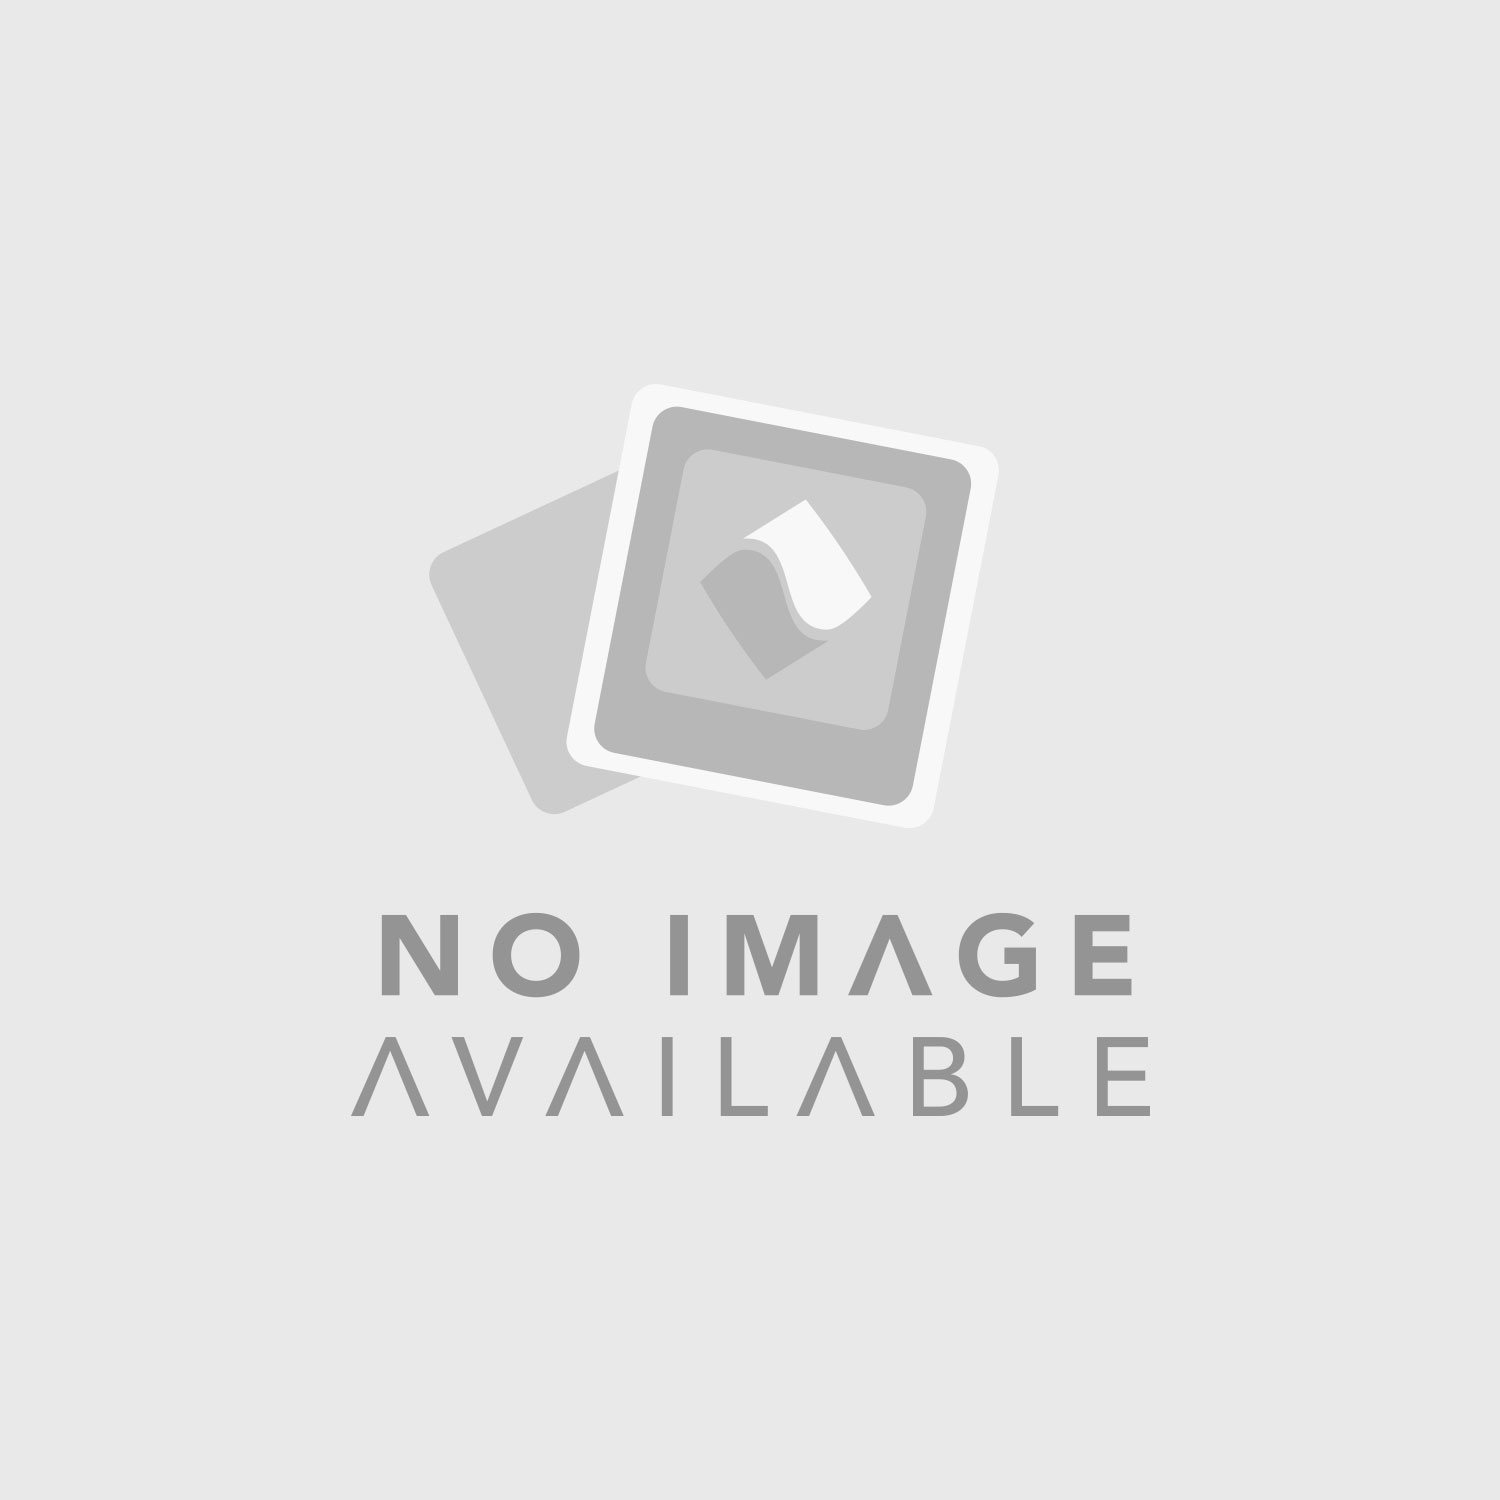 Aston Microphones Stealth Active Dynamic Microphone (Exclusive Boom-Arm Bundle)